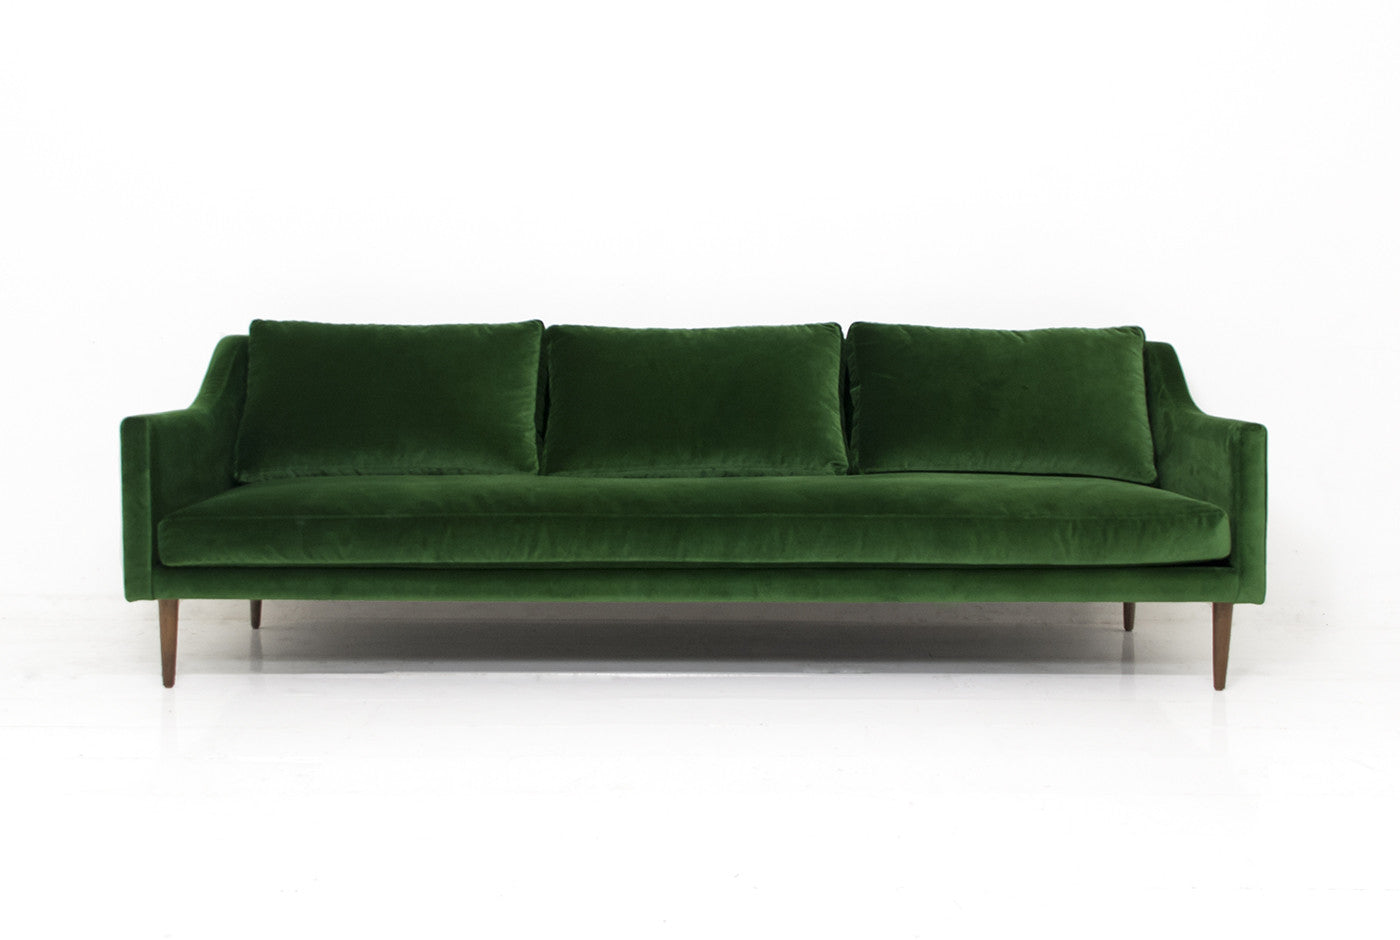 Naples Sofa In Emerald Green Velvet Modshop